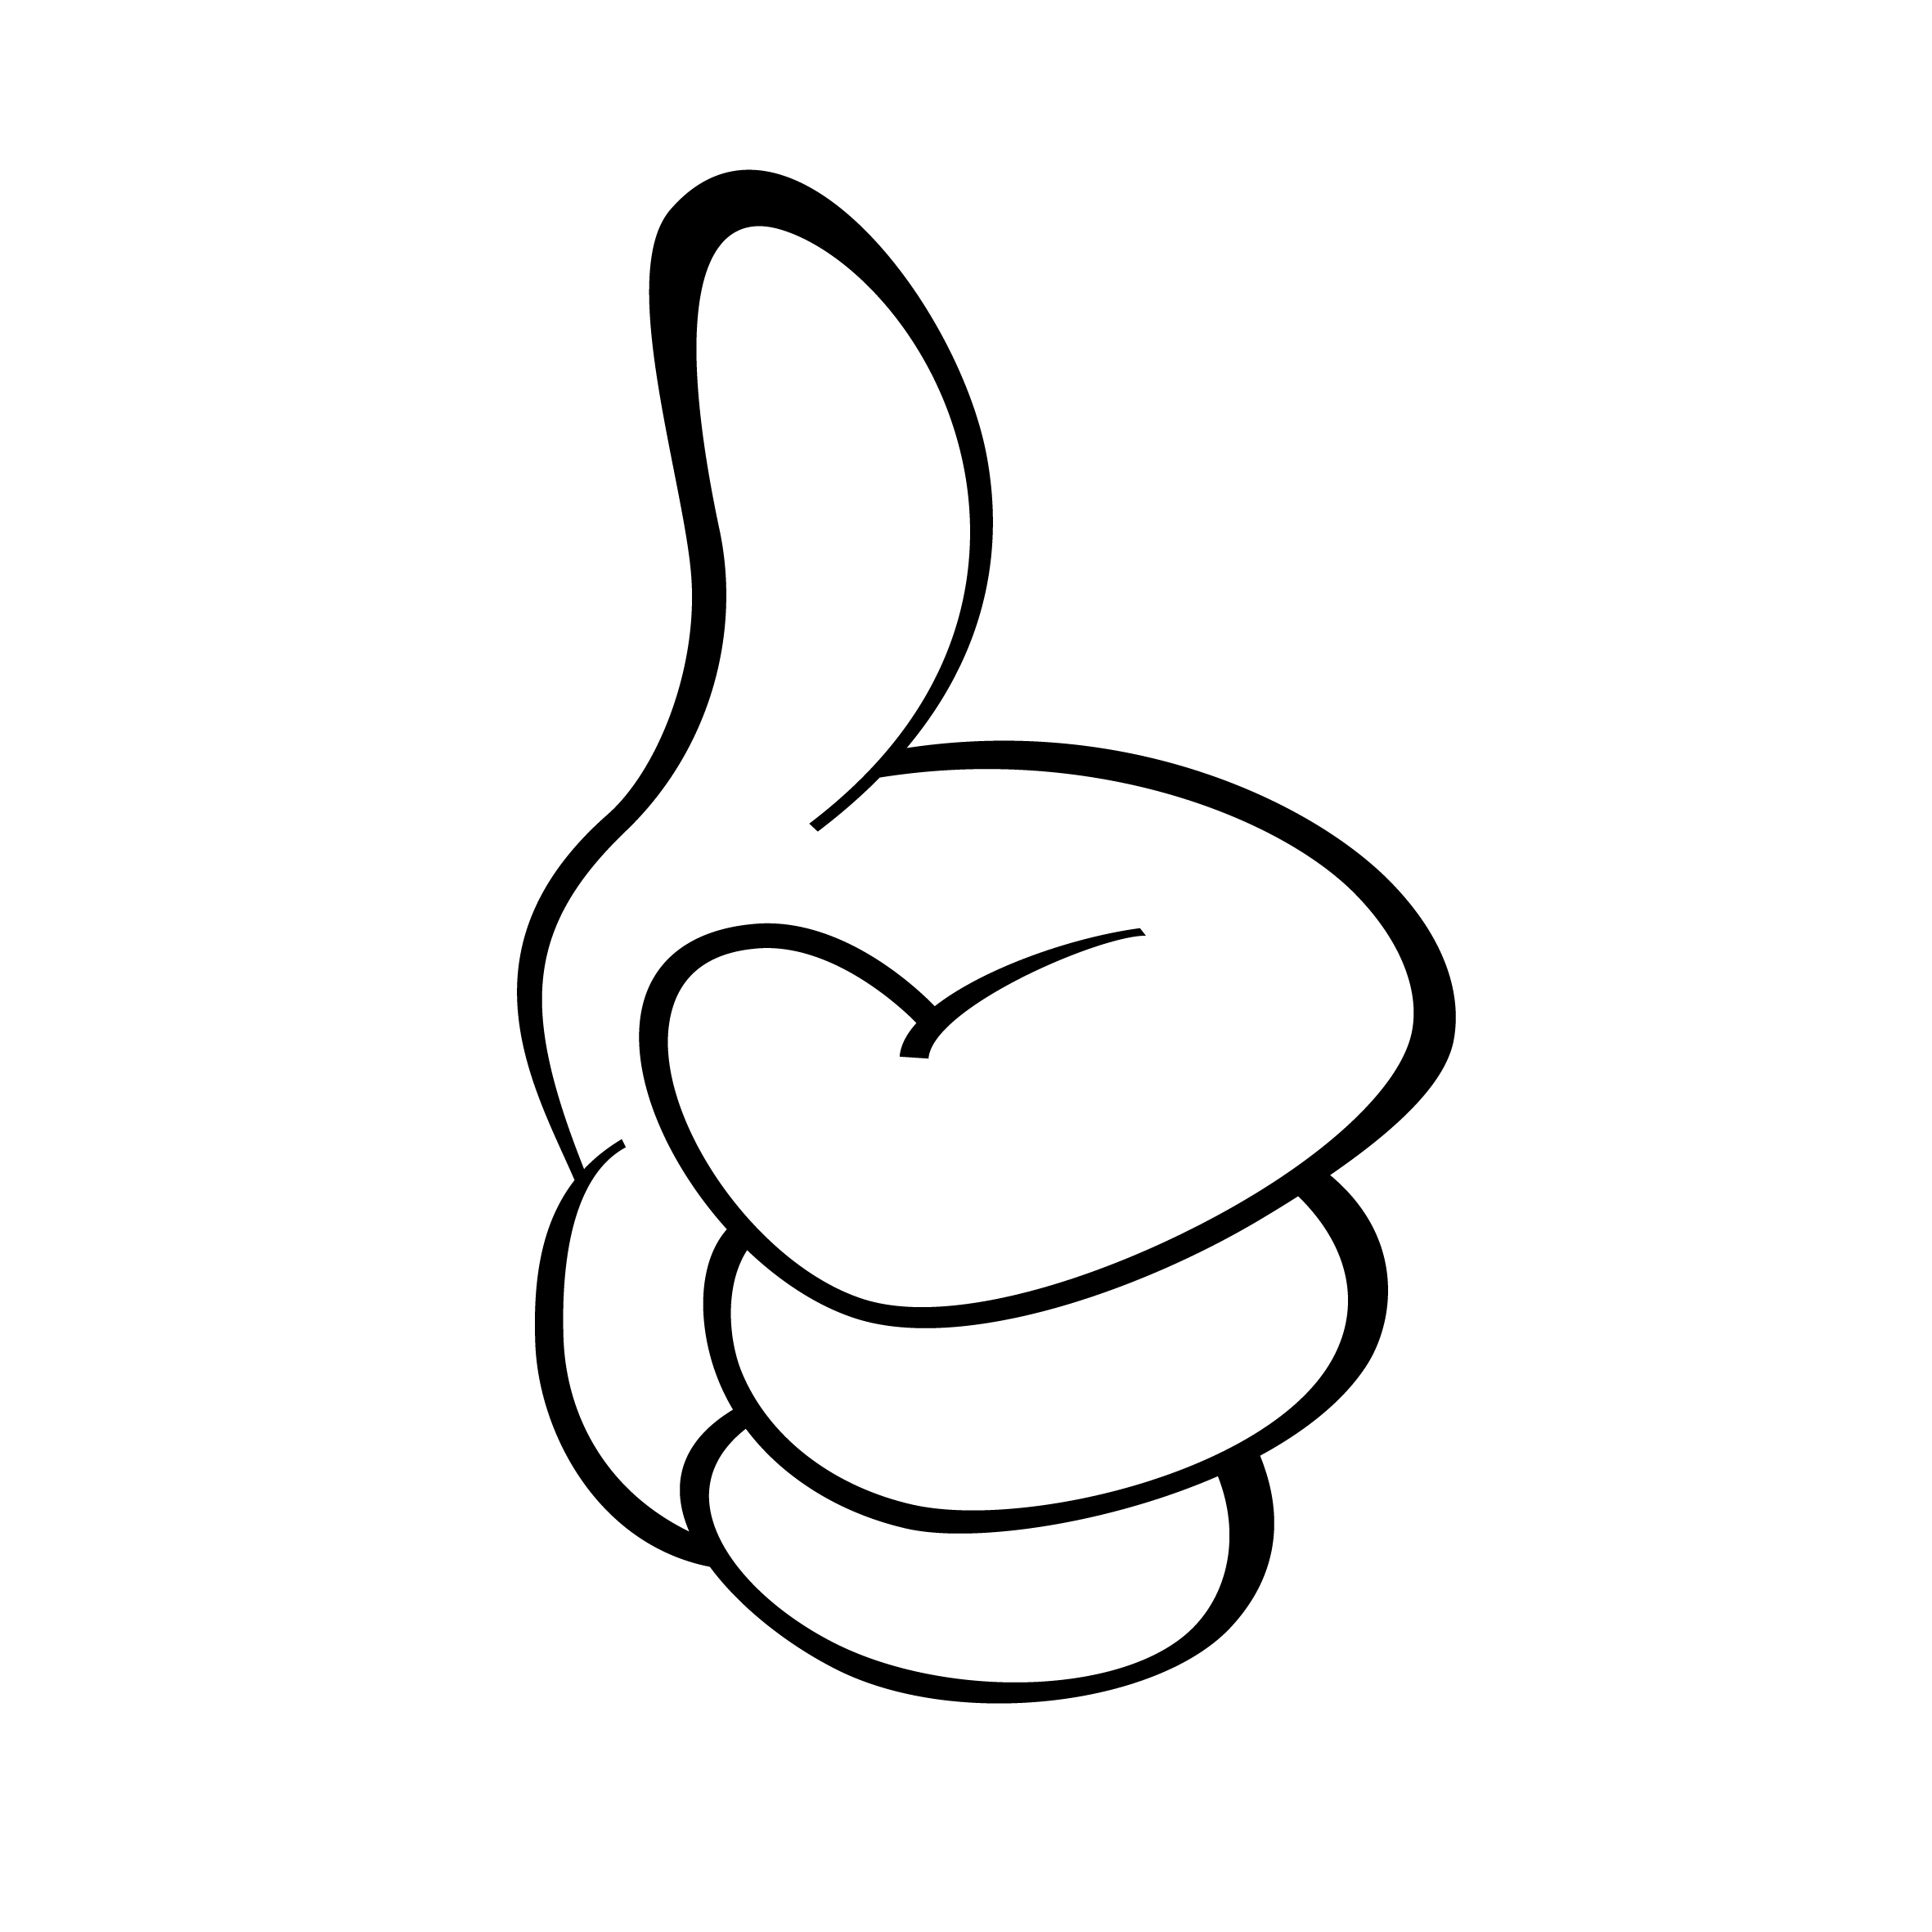 Thumbs Up Image - Clipart library - PNG Jempol